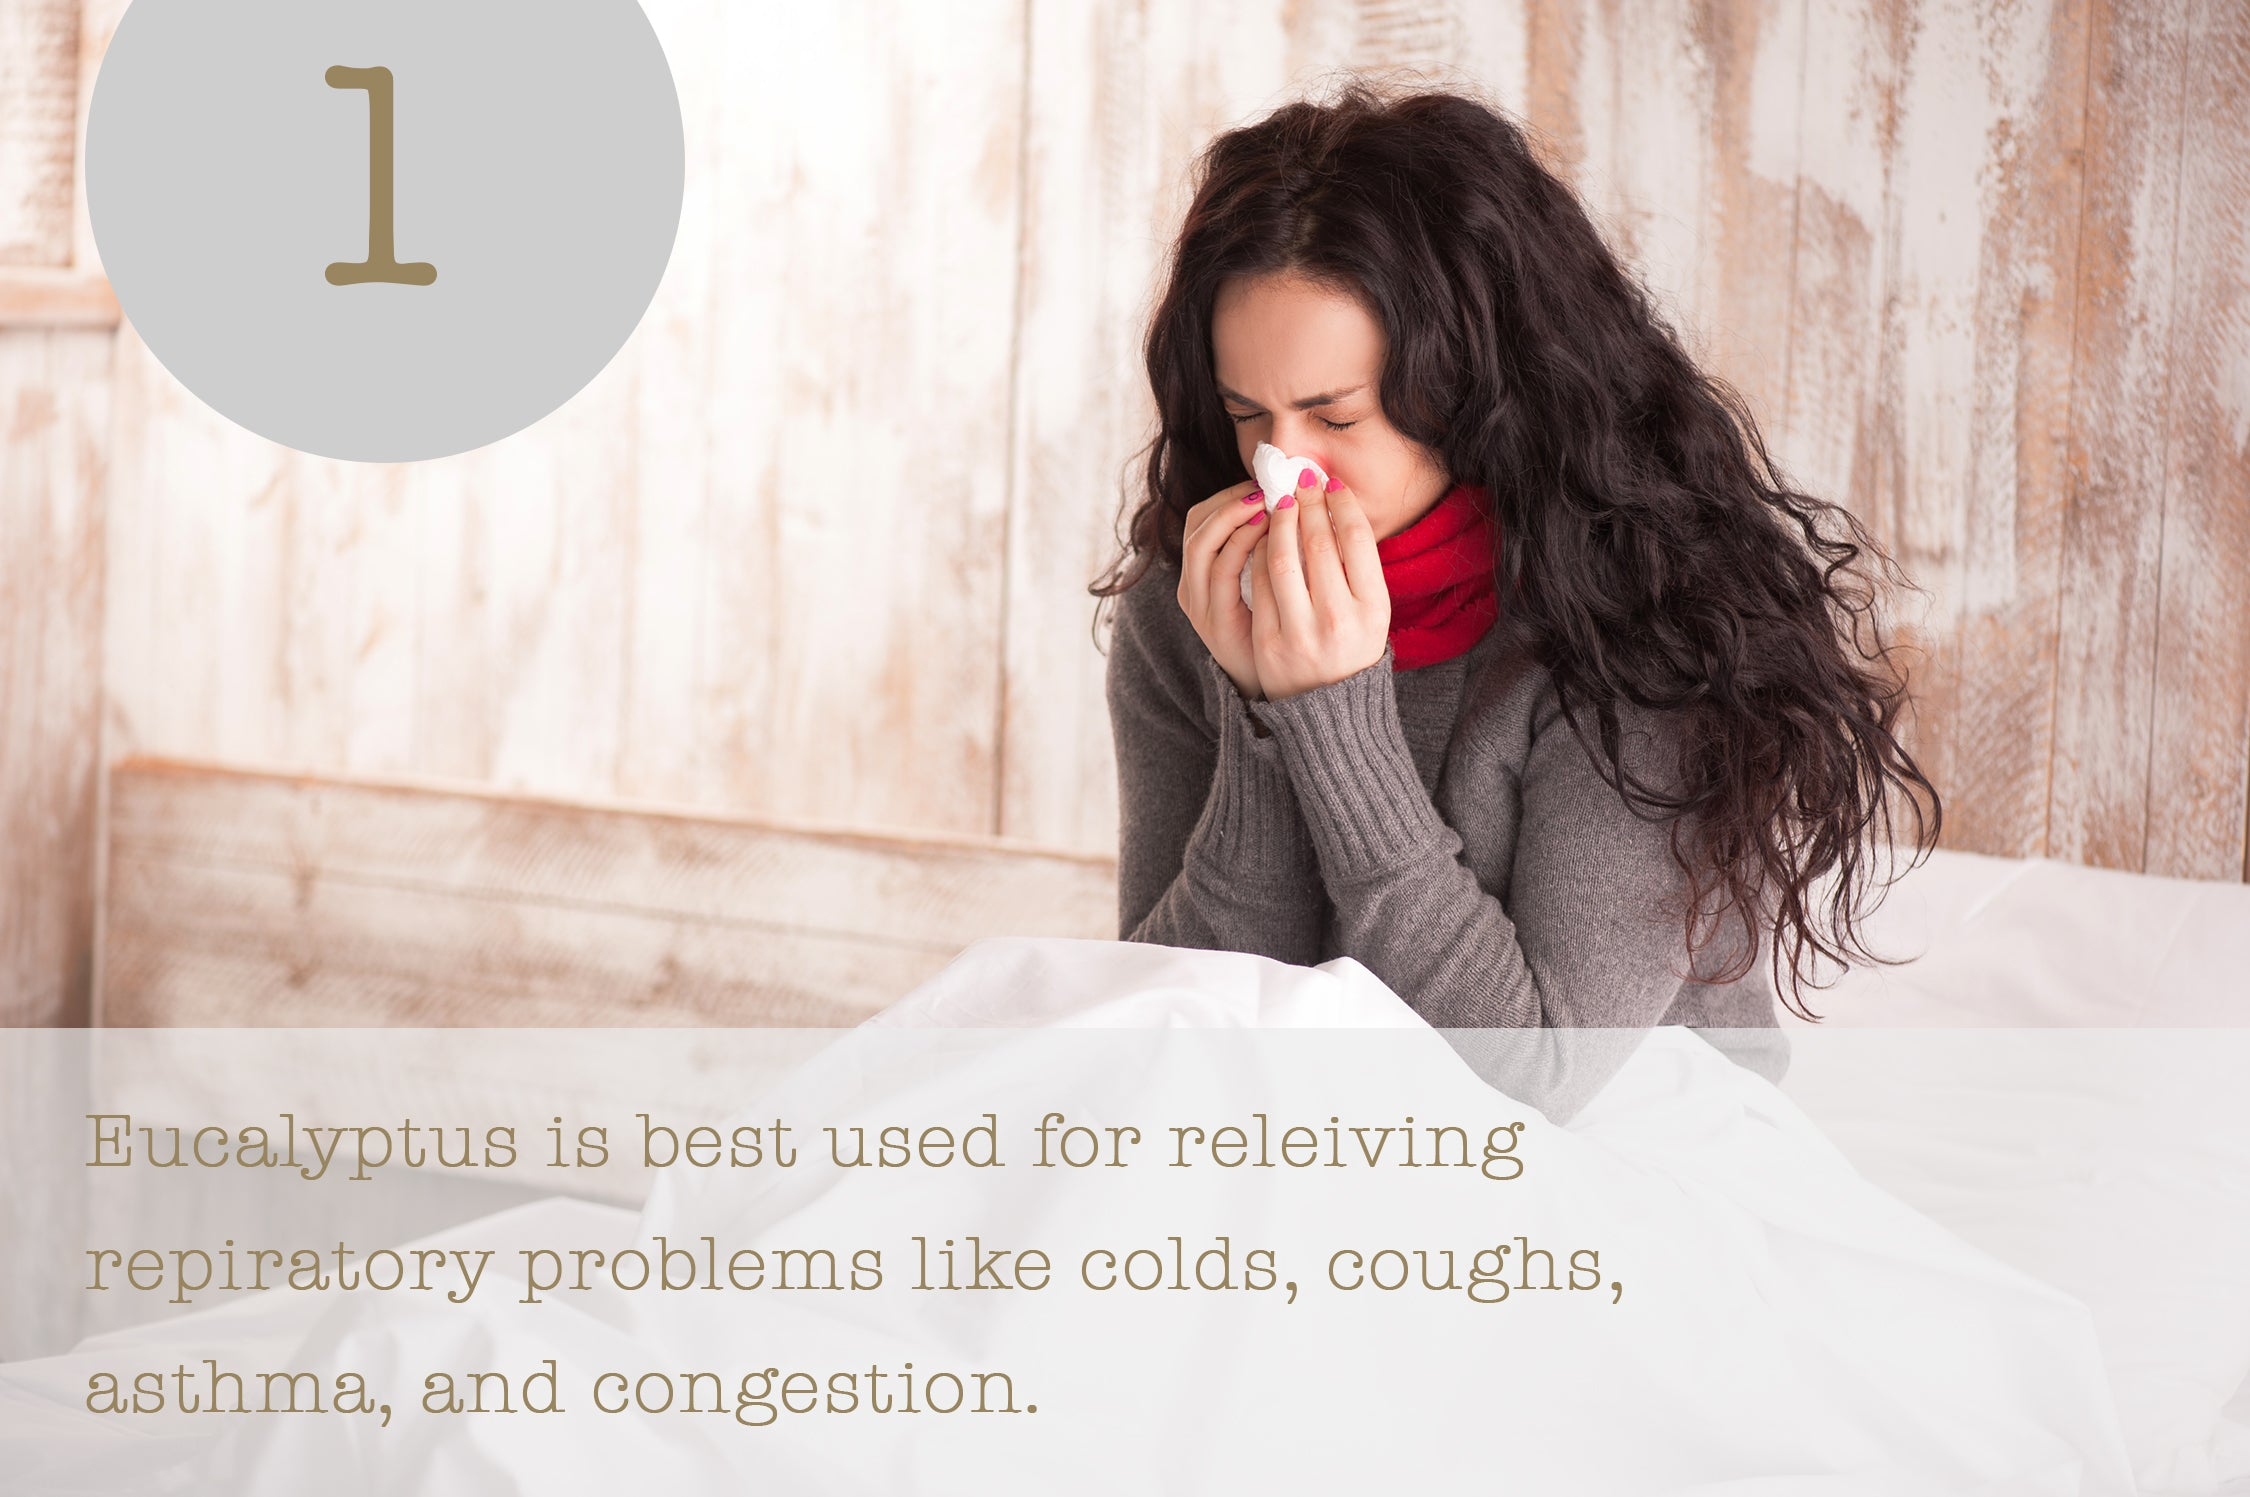 Eucalyptus is best used for releiving repiratory problems like colds, coughs, asthma, and congestion.